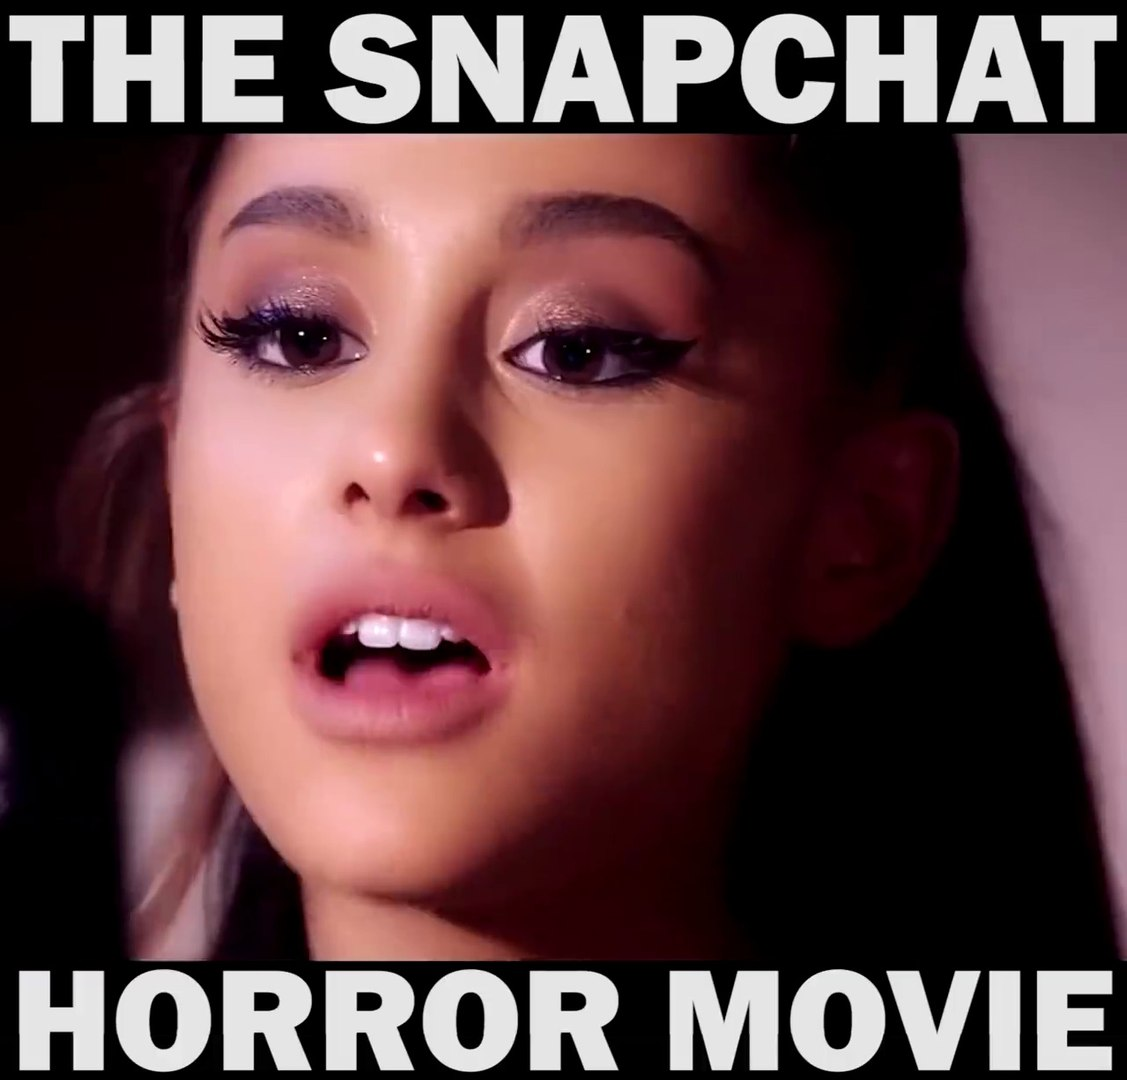 Snap chat horror movie